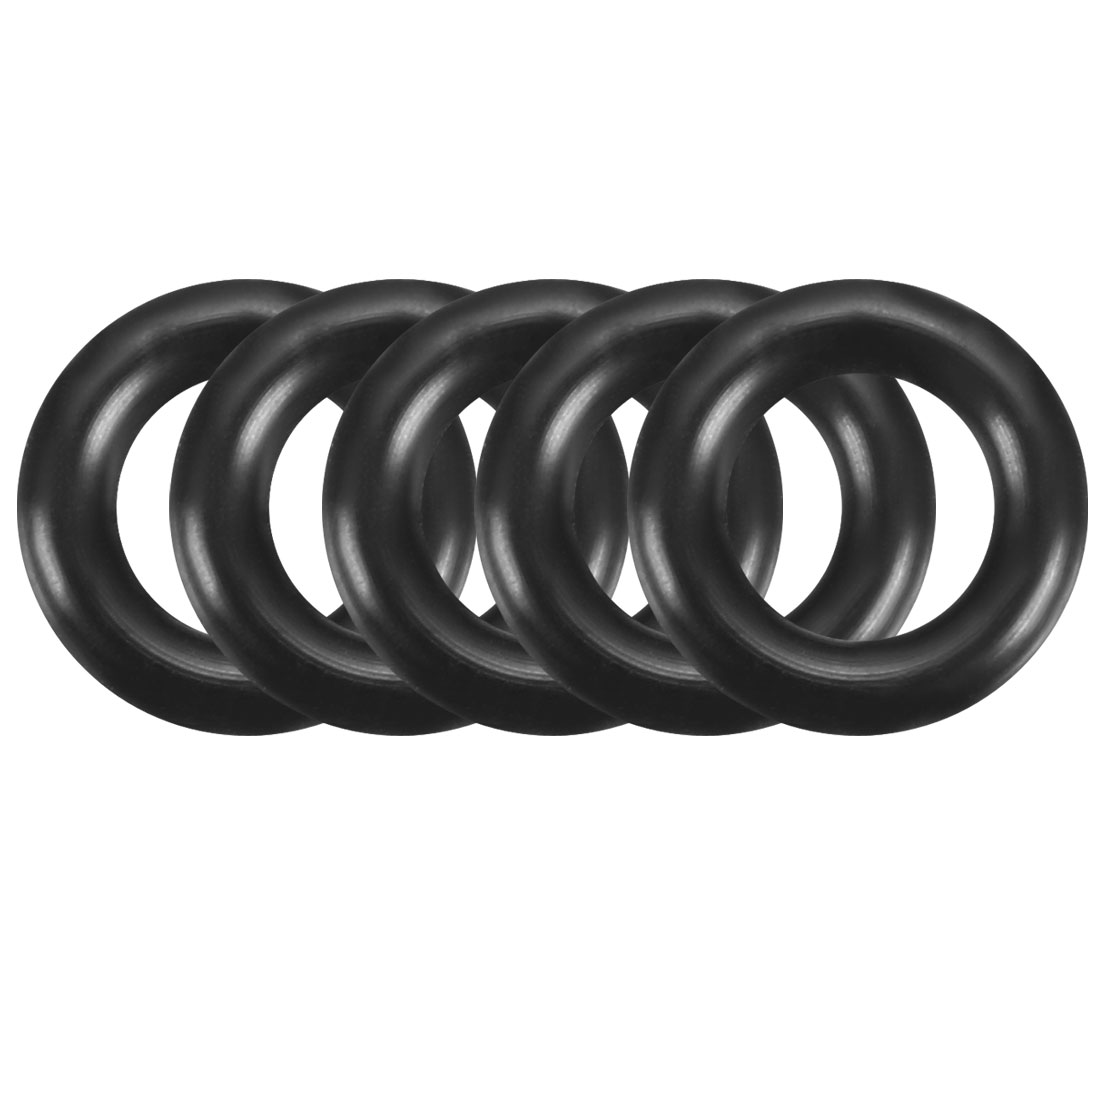 100Pcs 9mm x 1.9mm Black Flexible Nitrile Rubber O Ring Oil Seal Washer Grommets